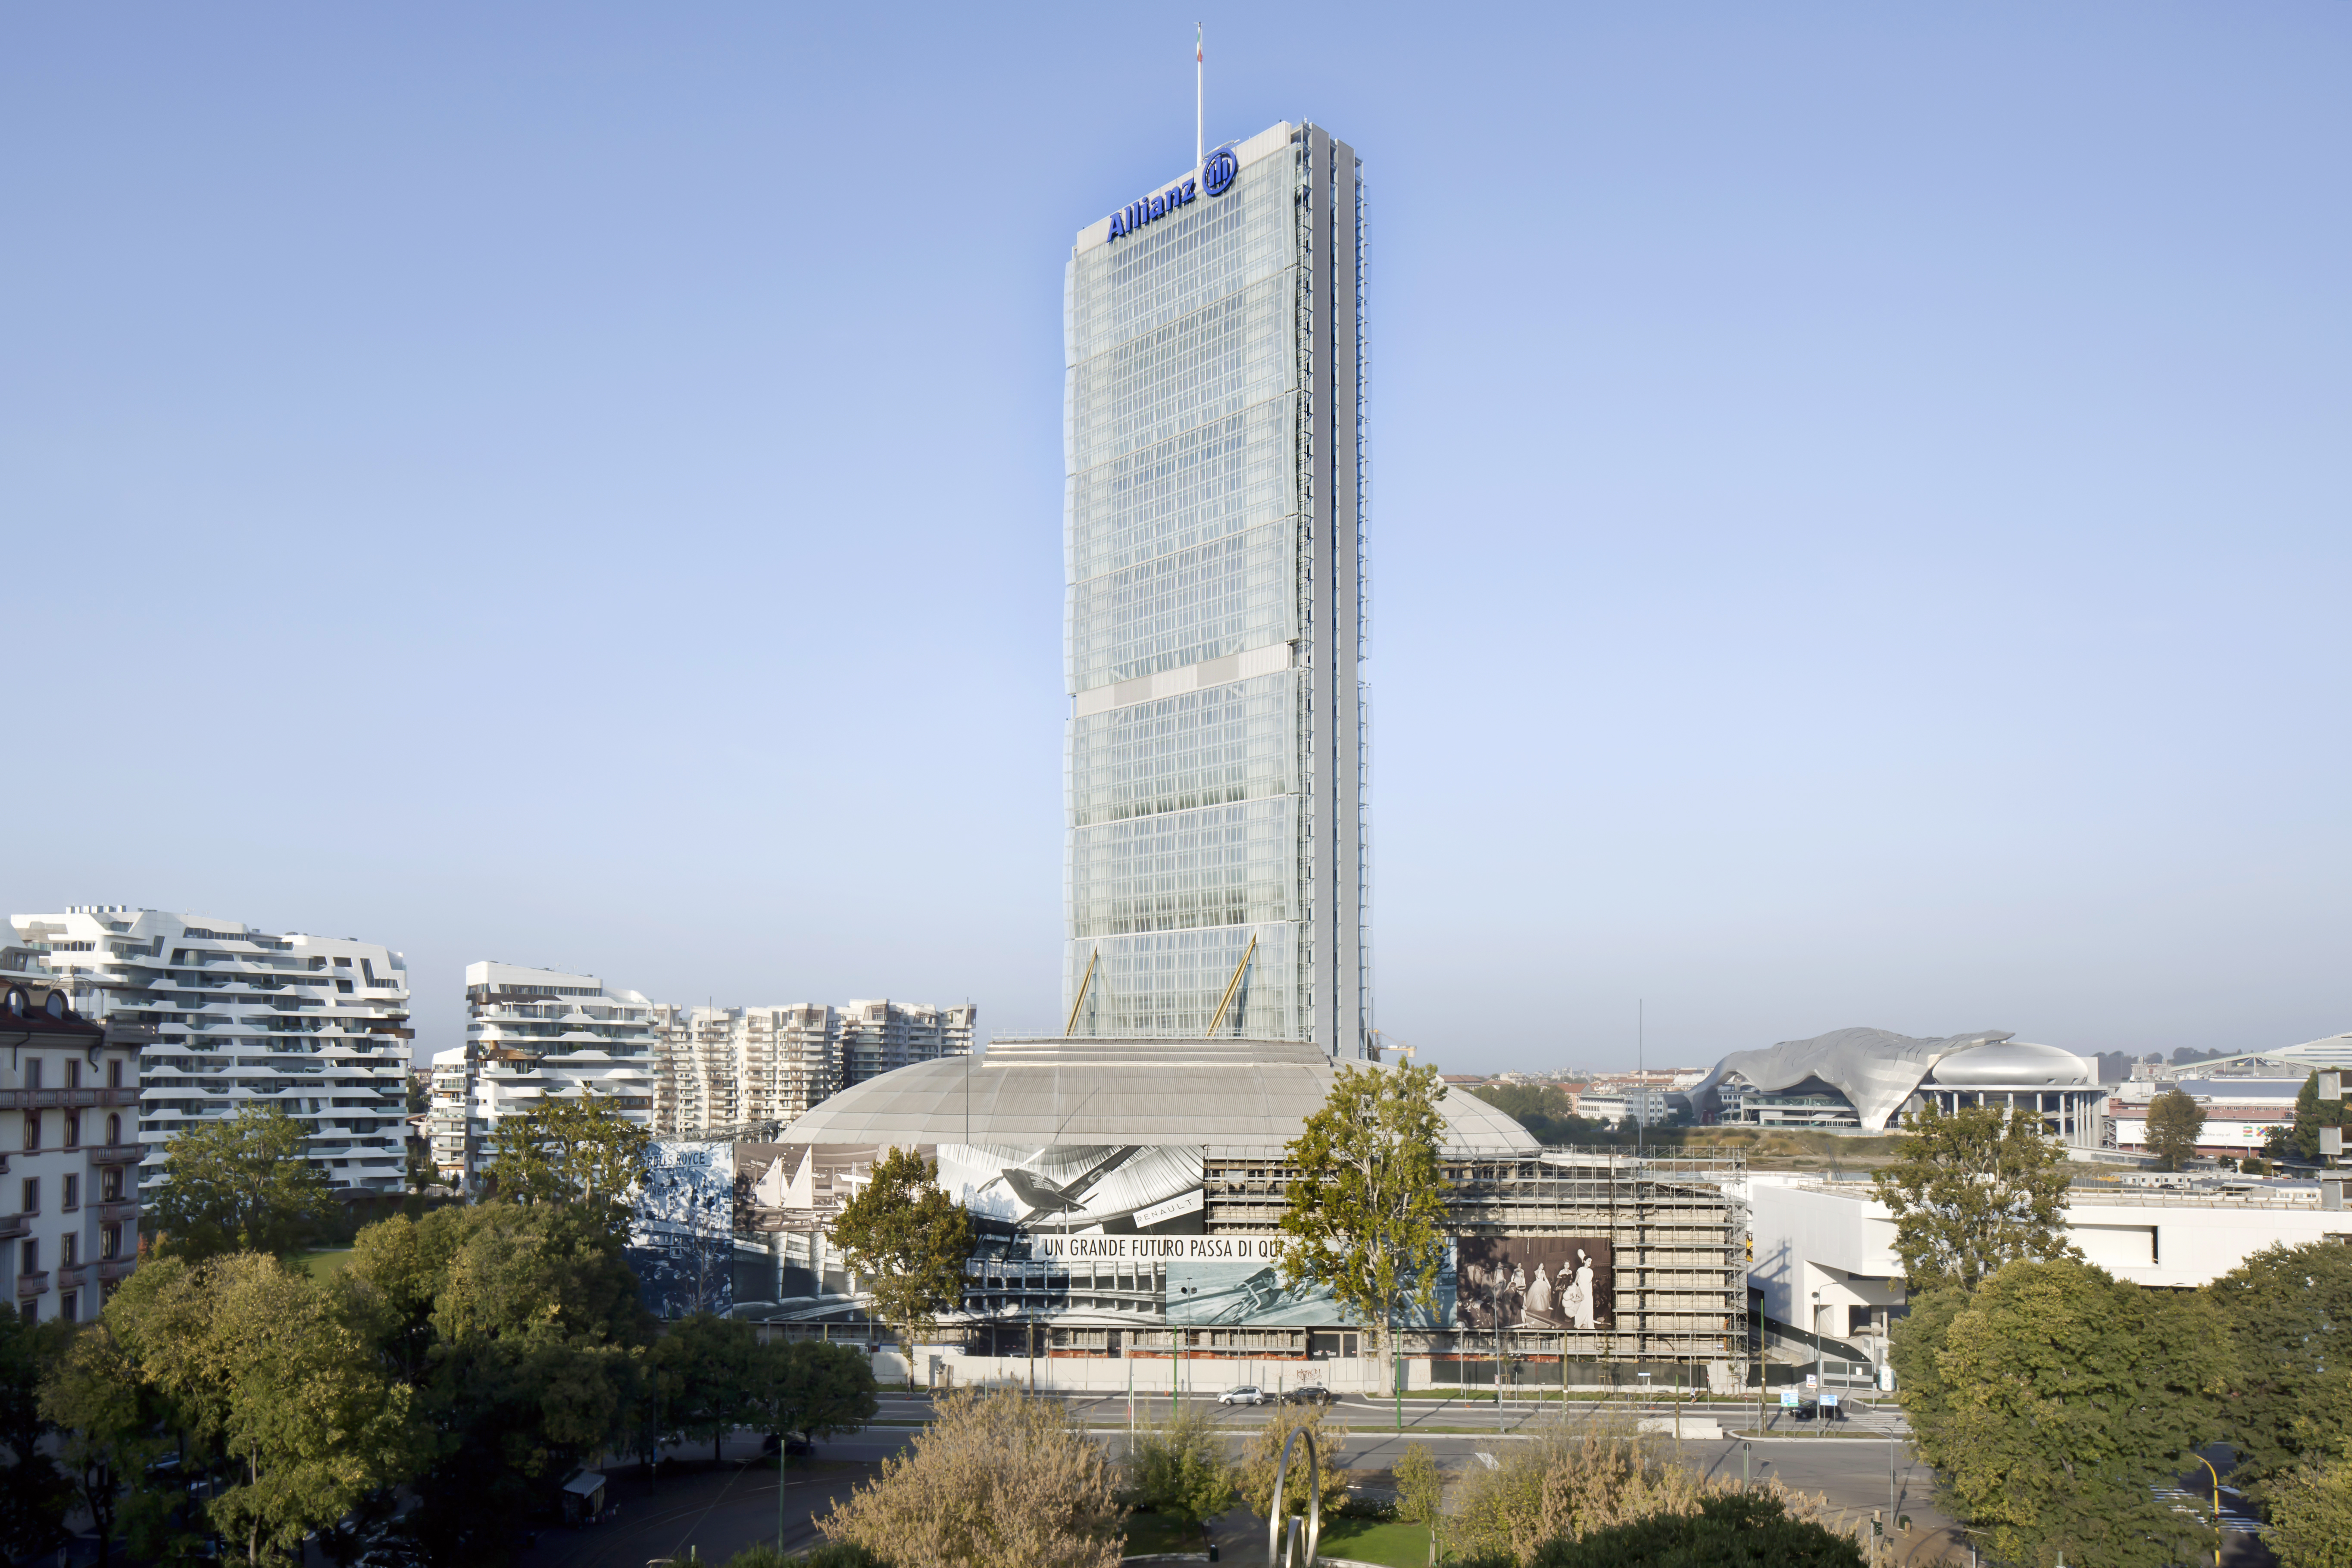 Allianz Tower, photo courtesy of Alessandra Chemollo